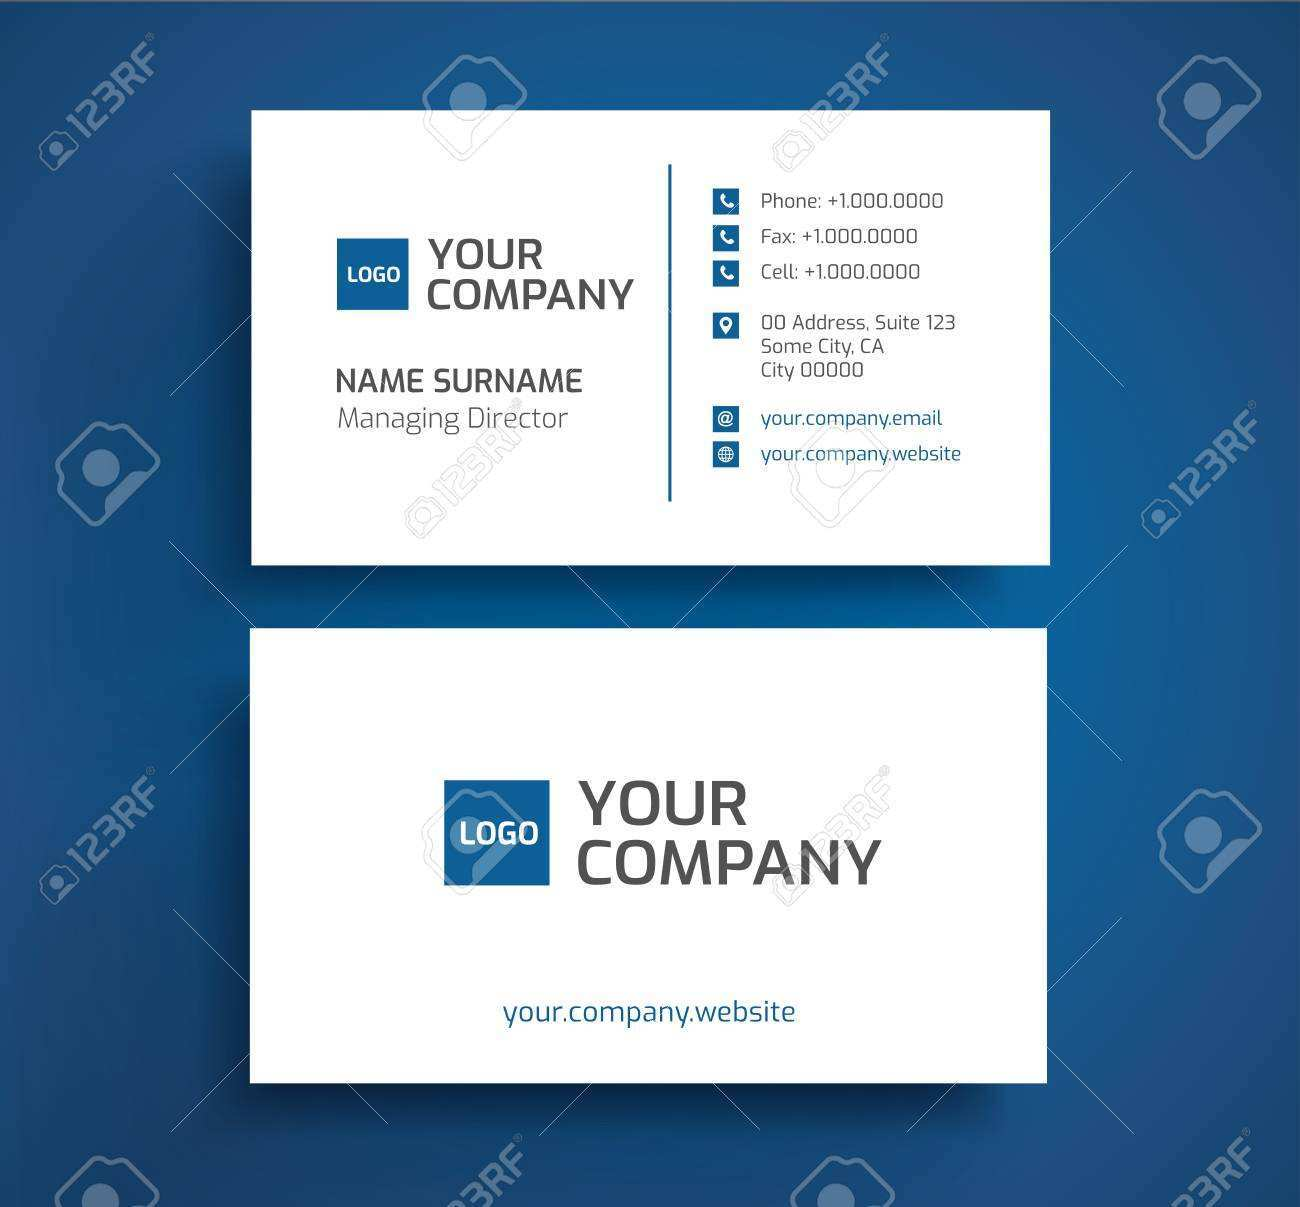 52 Online Business Card Template With Two Addresses by Business Card Template With Two Addresses